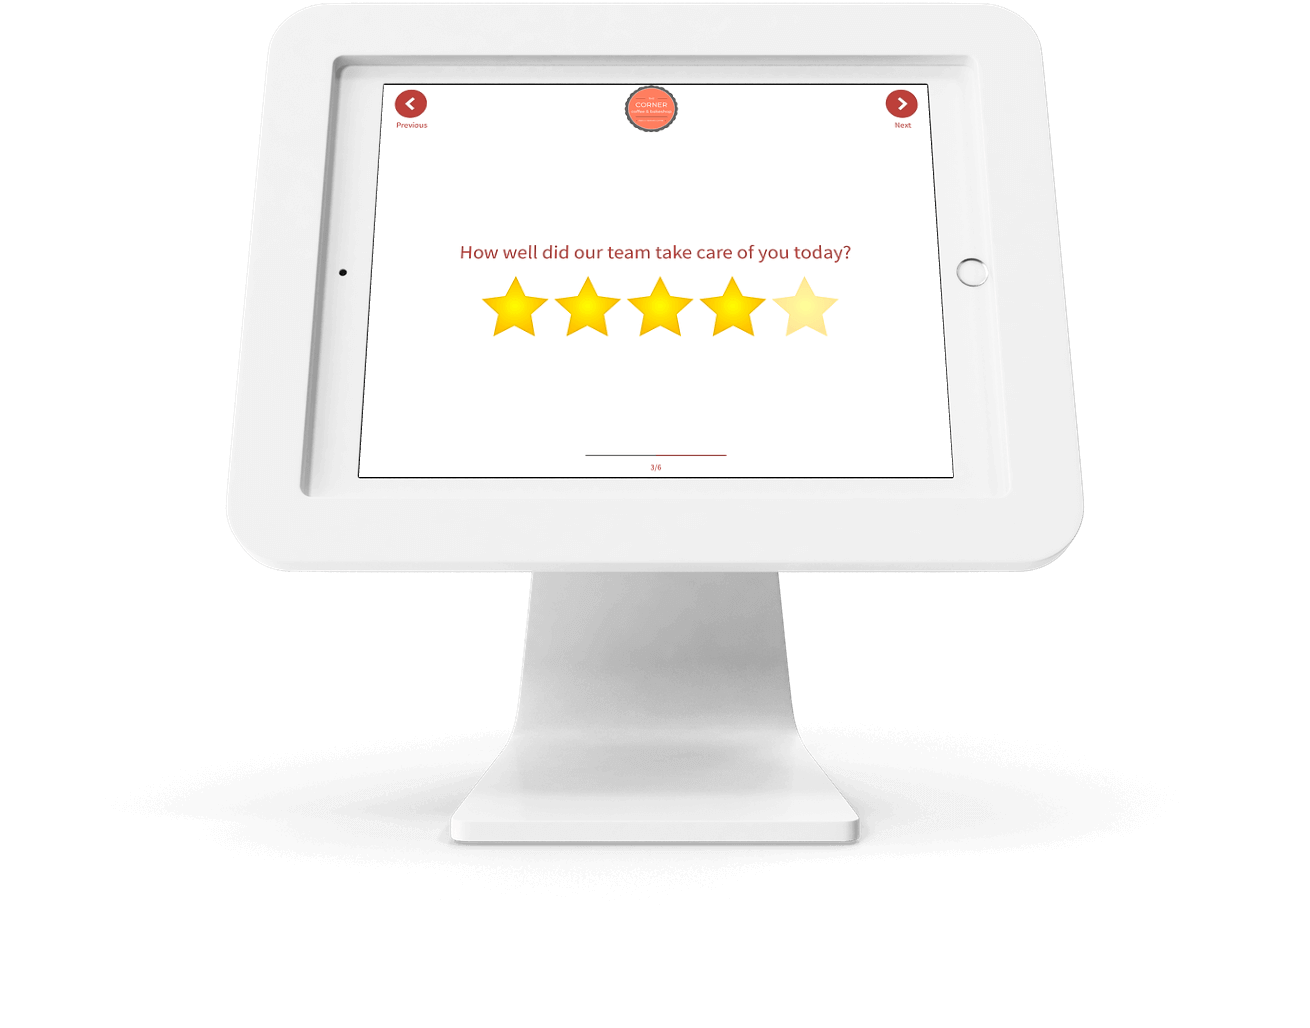 Tablet-based Feedback Kiosk with 5 Star Rating Question